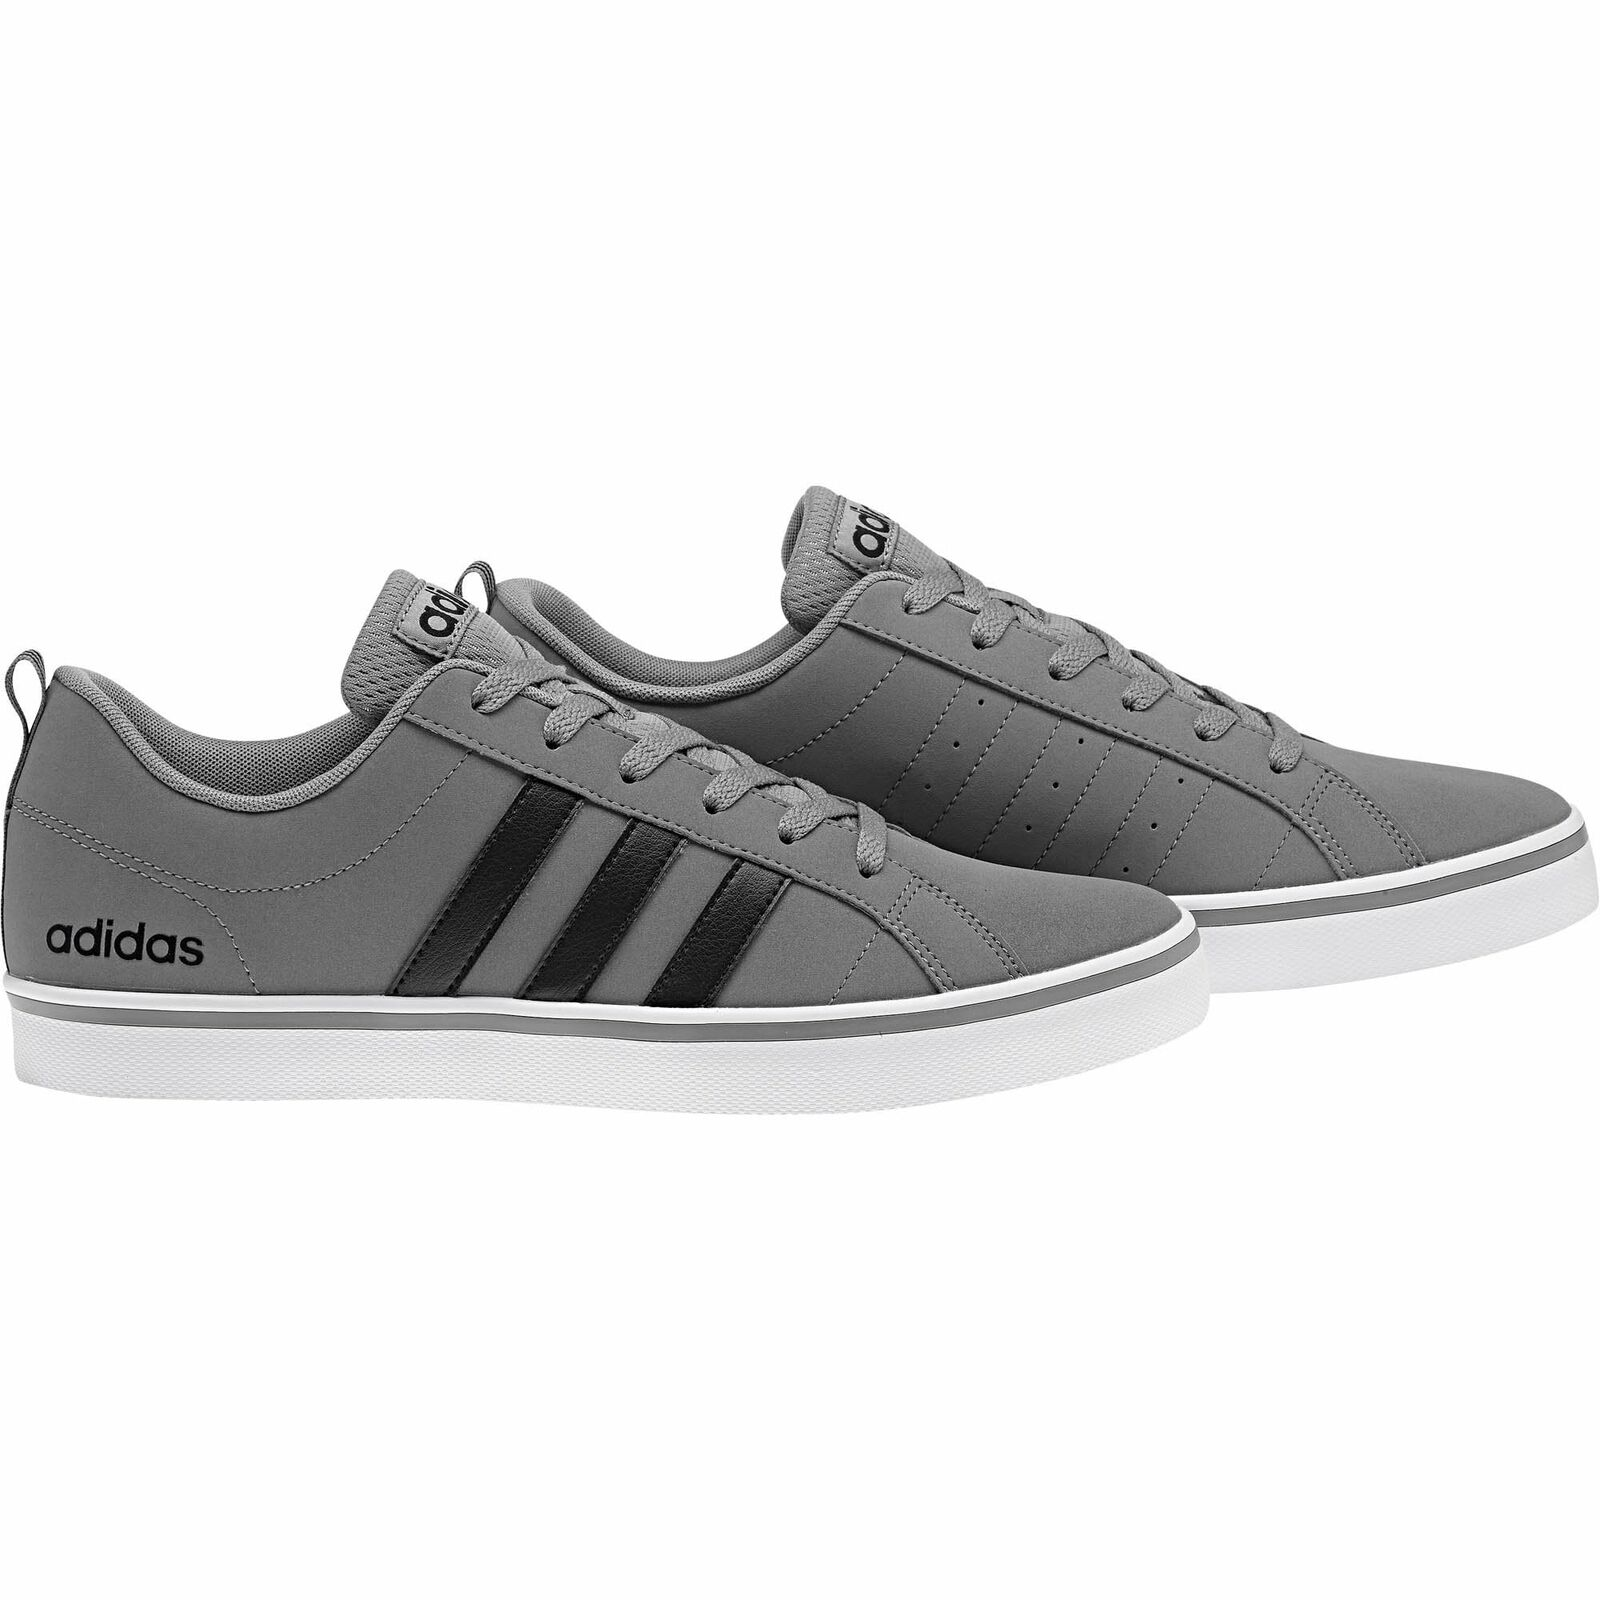 ADIDAS Mens VS Pace Trainers (Grey) for